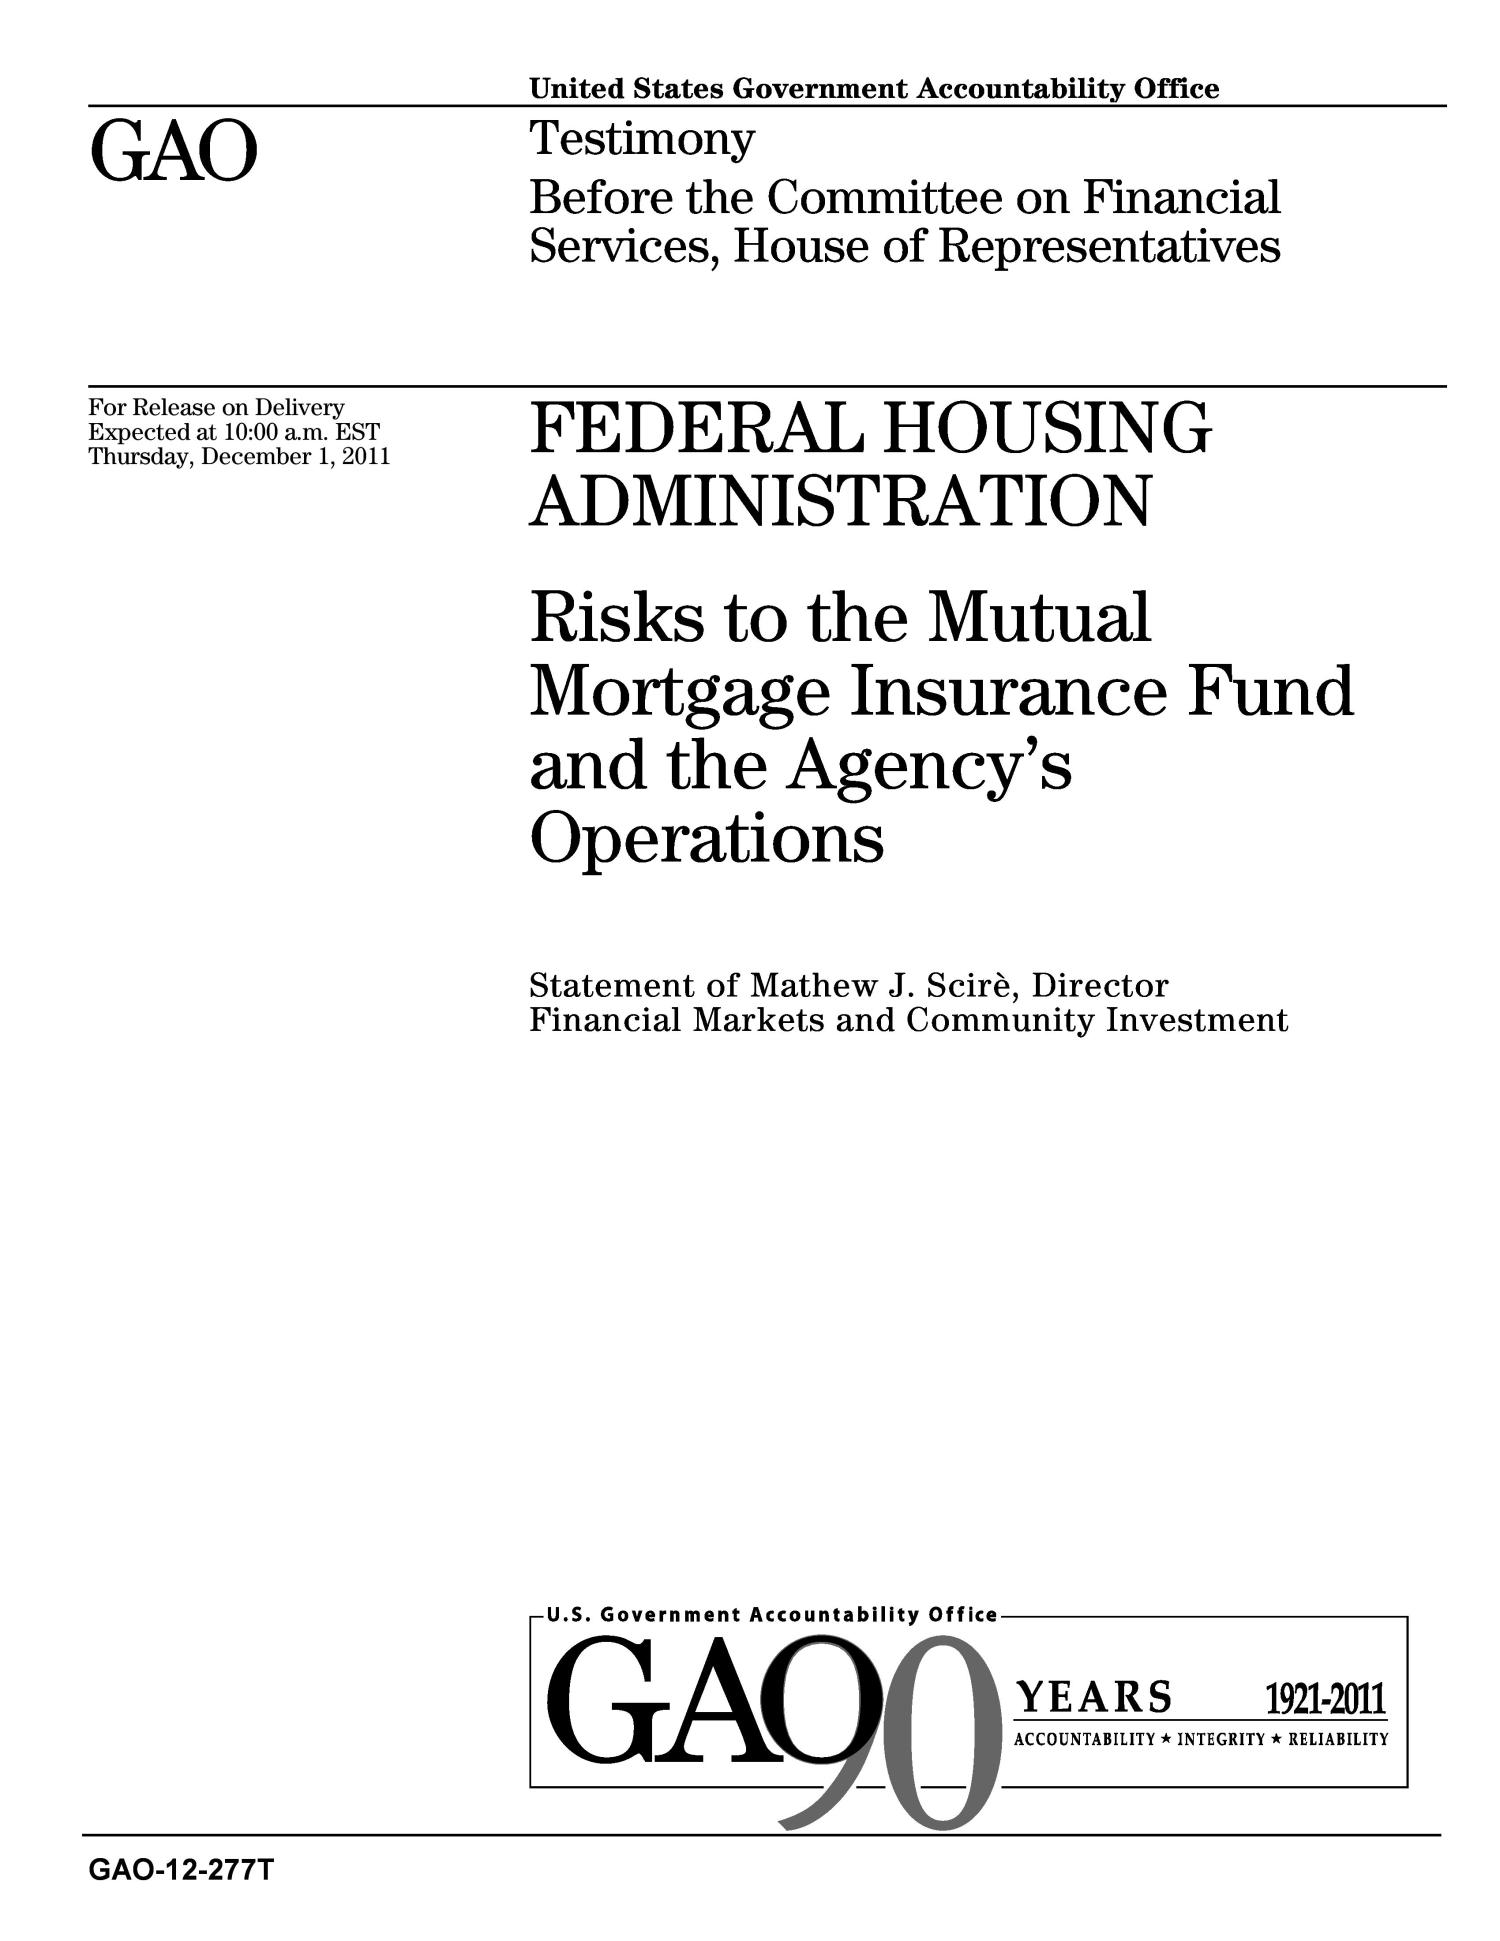 Federal Housing Administration: Risks to the Mutual Mortgage Insurance Fund and the Agency's Operations                                                                                                      [Sequence #]: 1 of 20